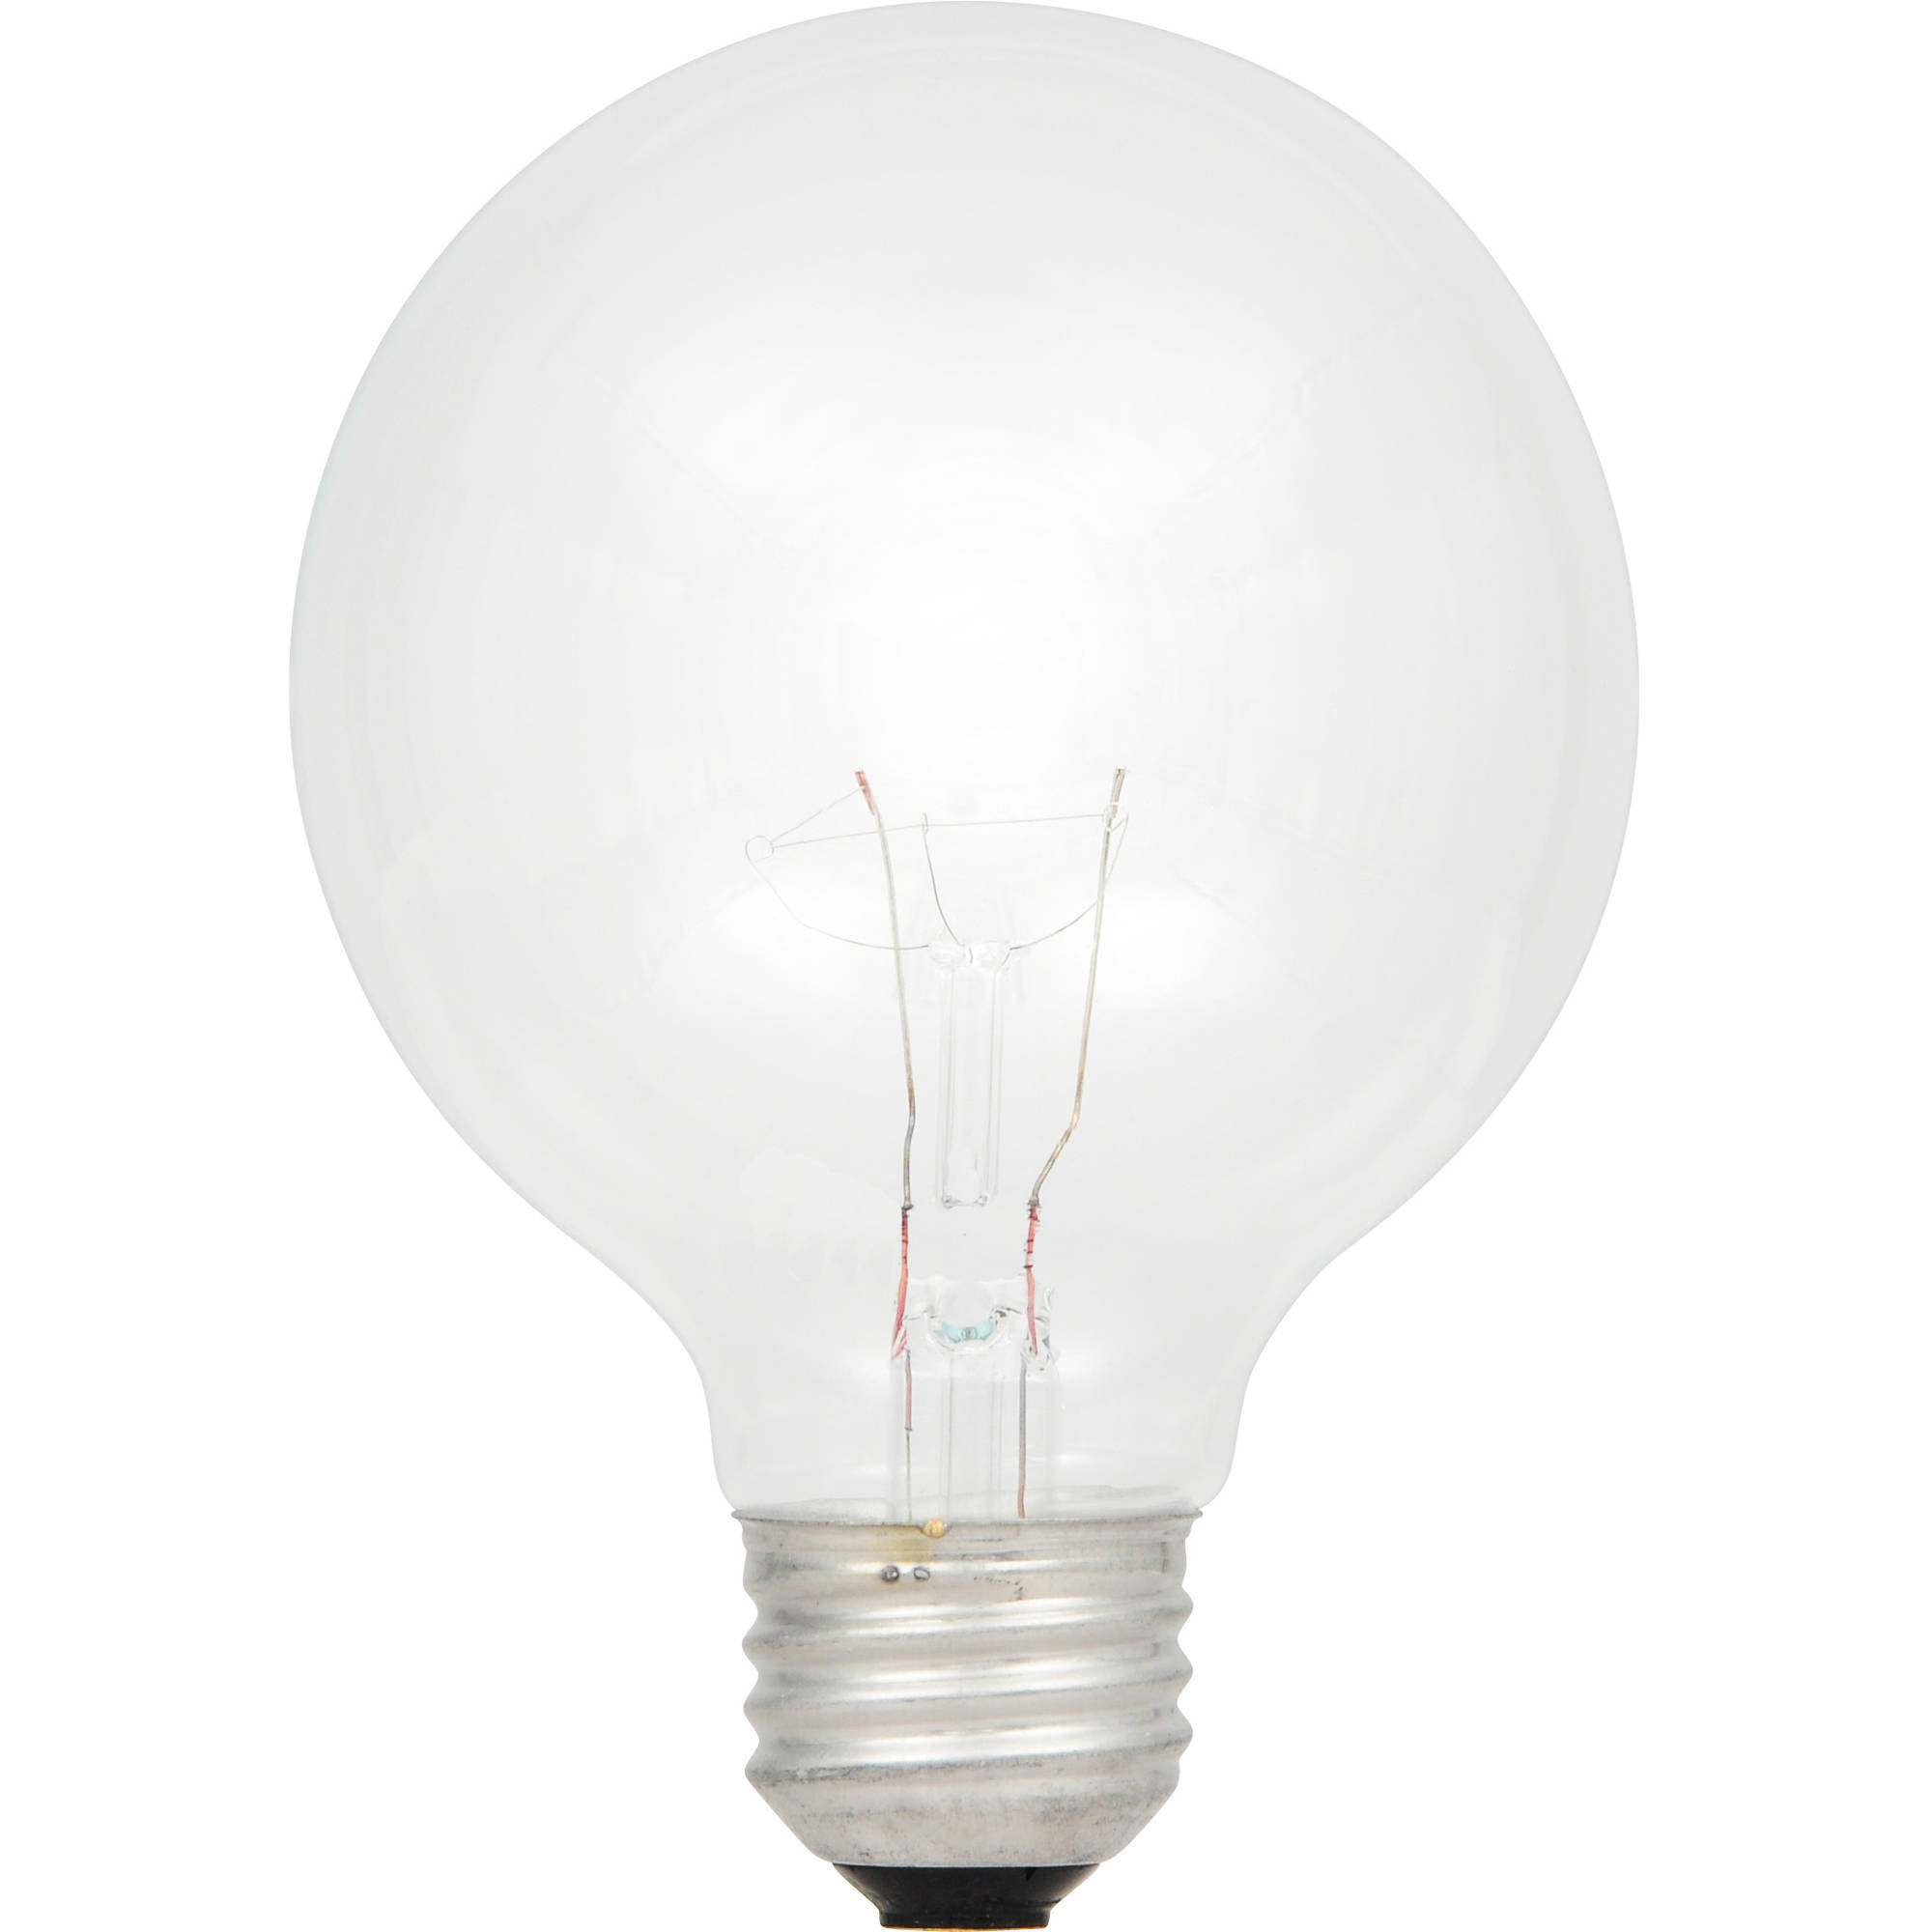 Custom Light Bulb Essay